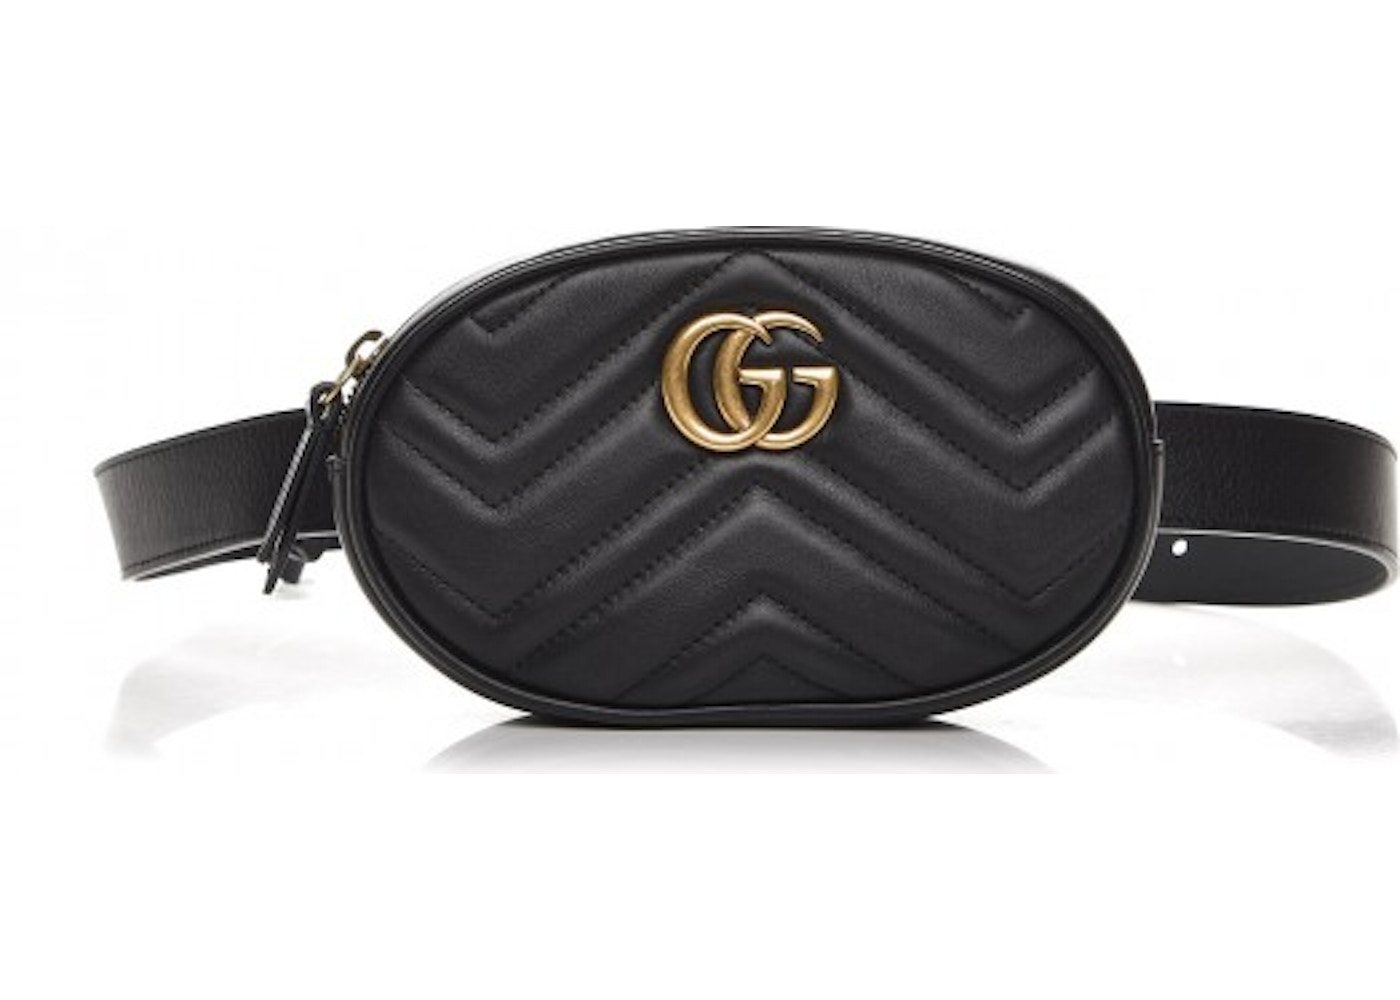 191ccf1df13 Gucci Marmont Belt Bag Matelasse GG 85 Black. Matelasse GG 85 Black